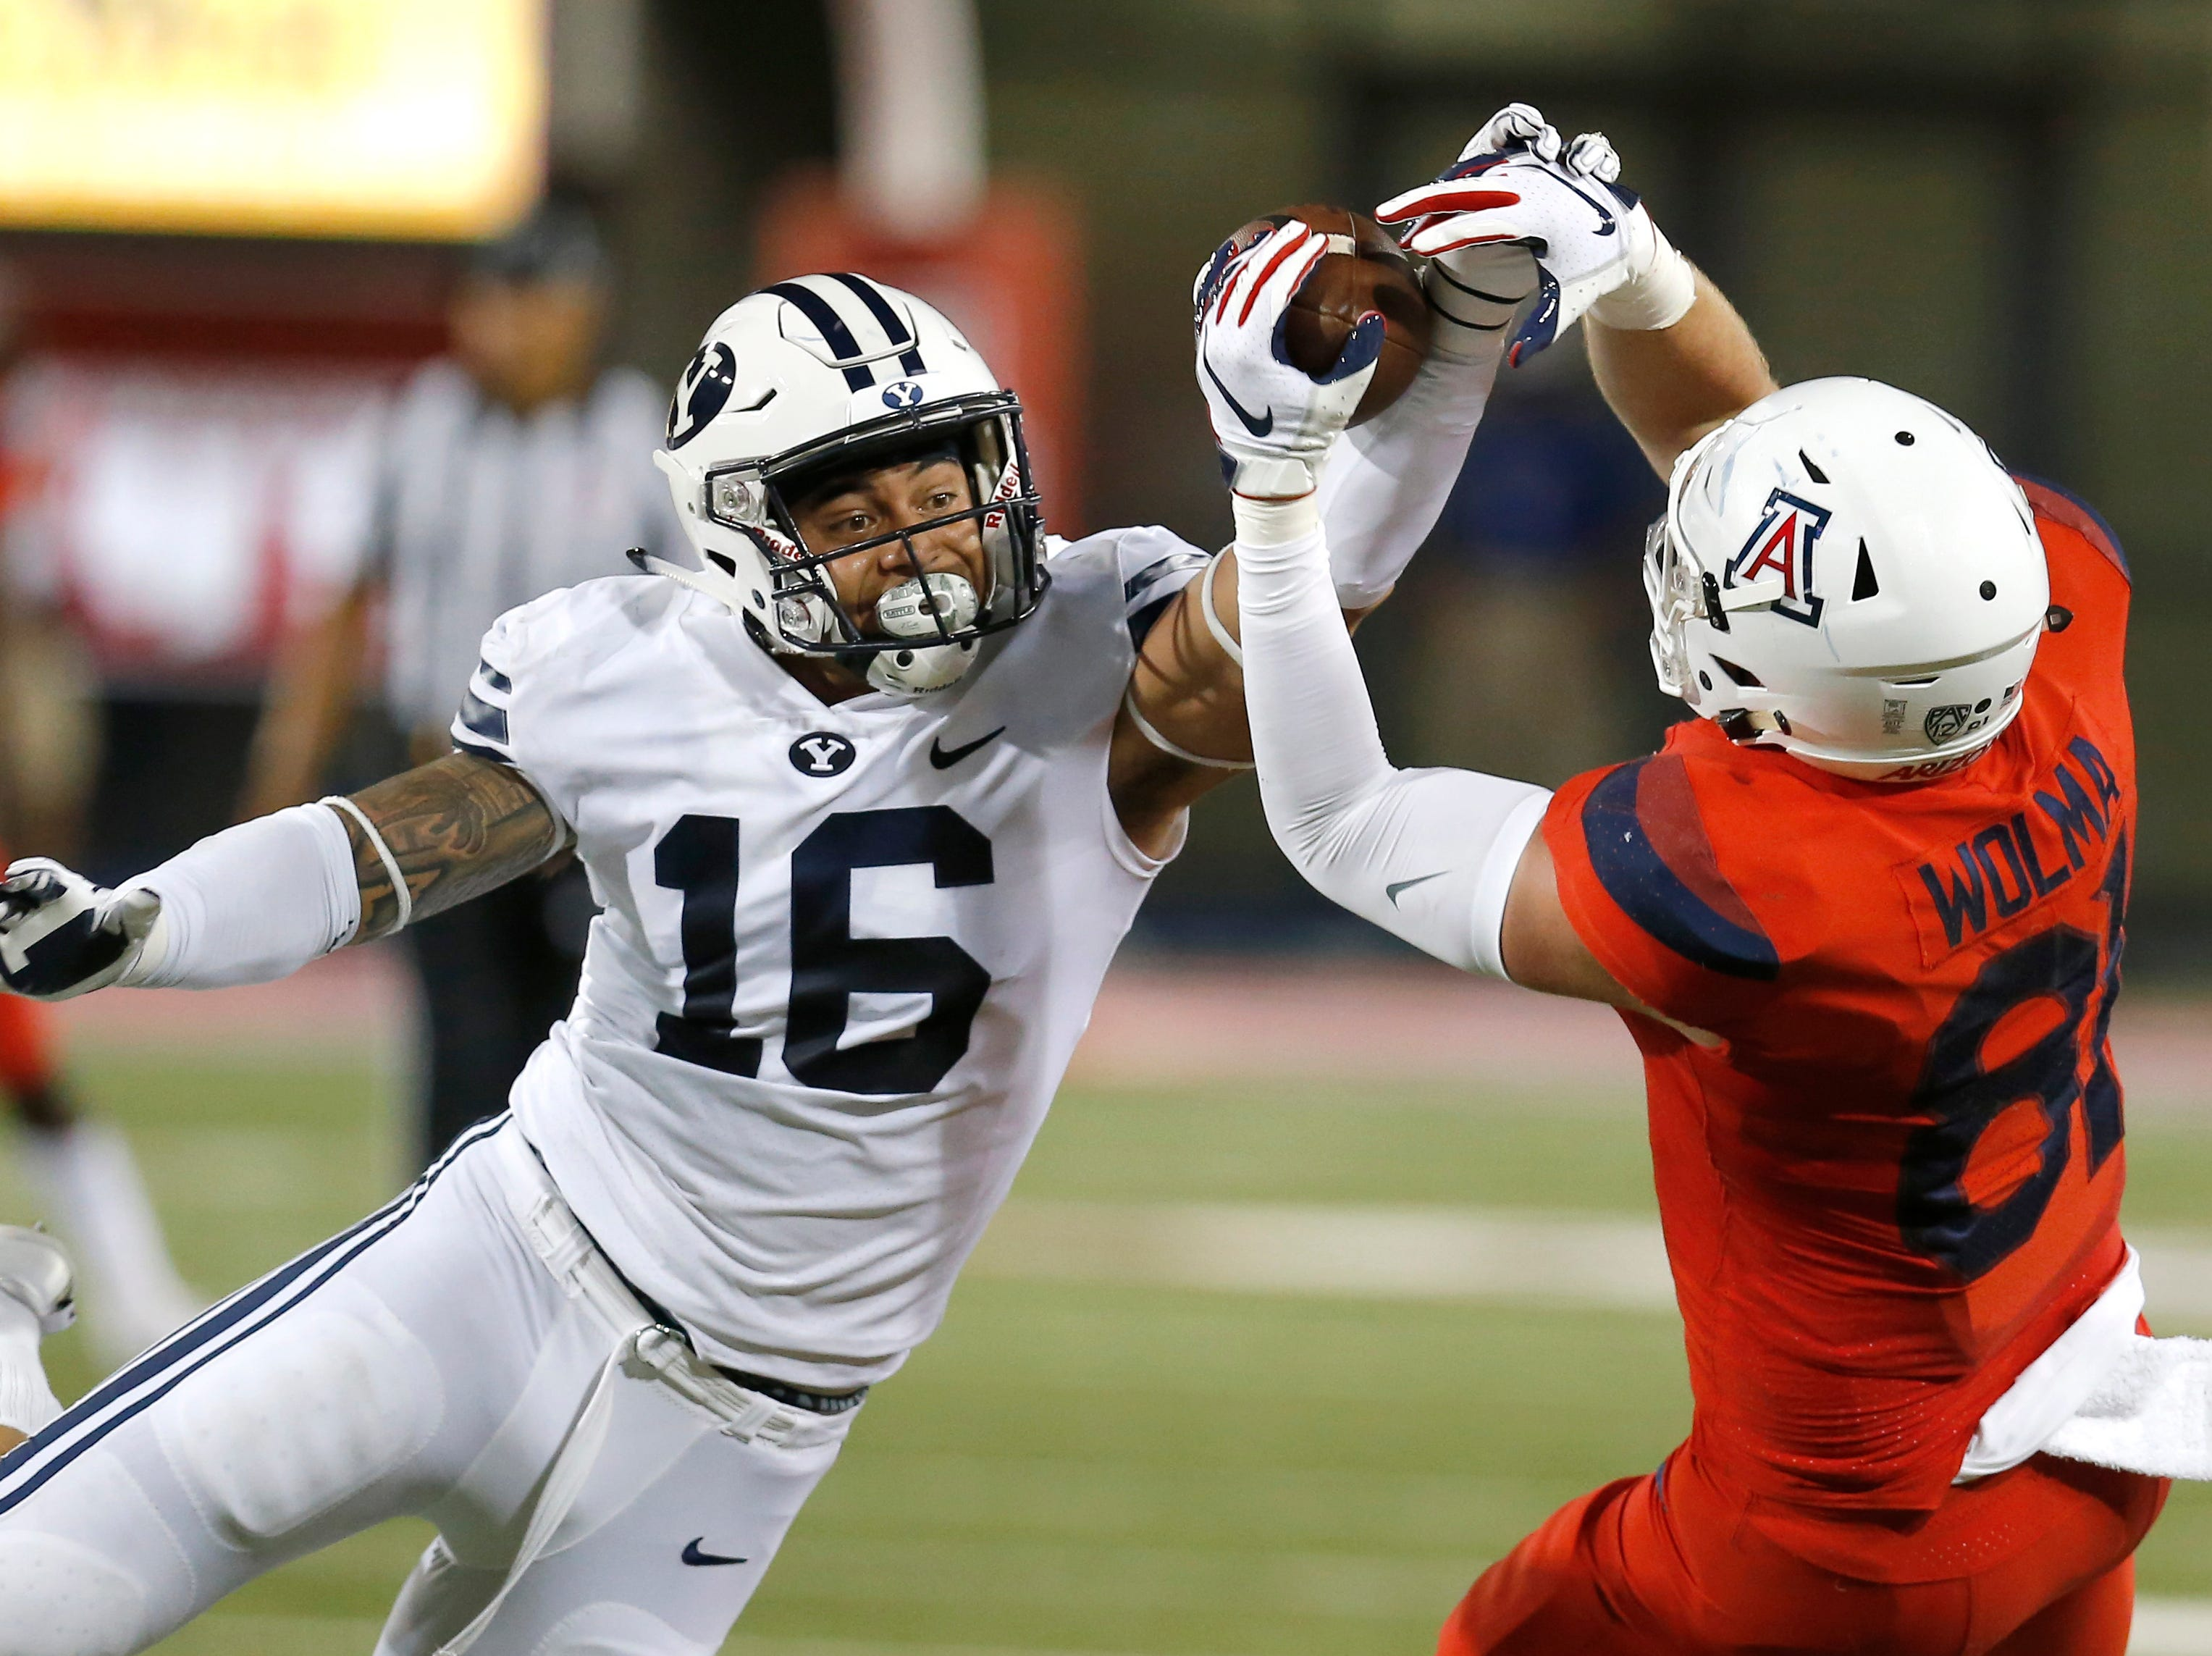 BYU  linebacker Sione Takitaki (16) breaks up a pass intended for Arizona tight end Bryce Wolma (81) during the first half of an NCAA college football game Saturday, Sept. 1, 2018, in Tucson, Ariz.